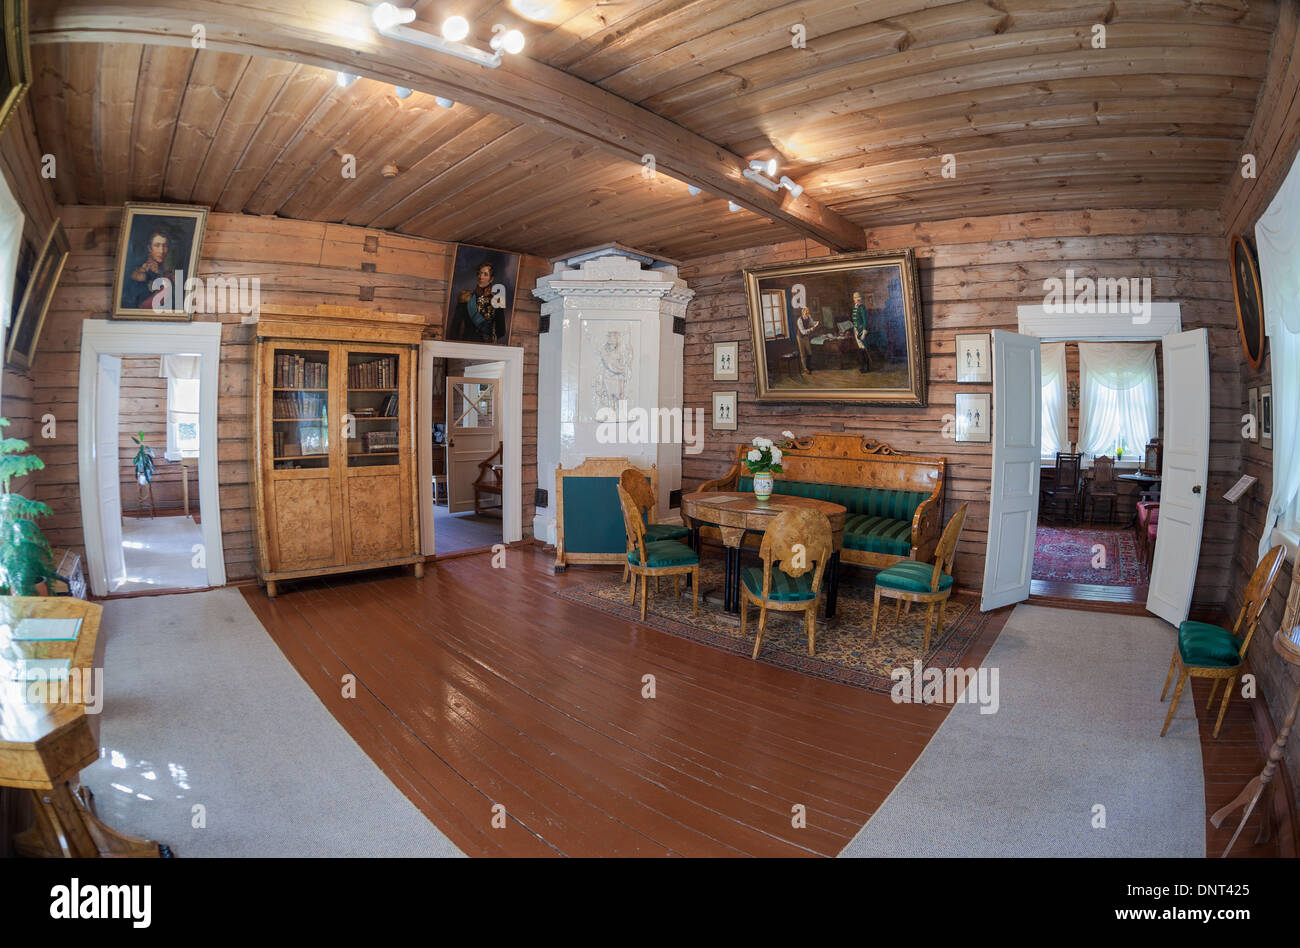 The interior of the museum Suvorov - Stock Image